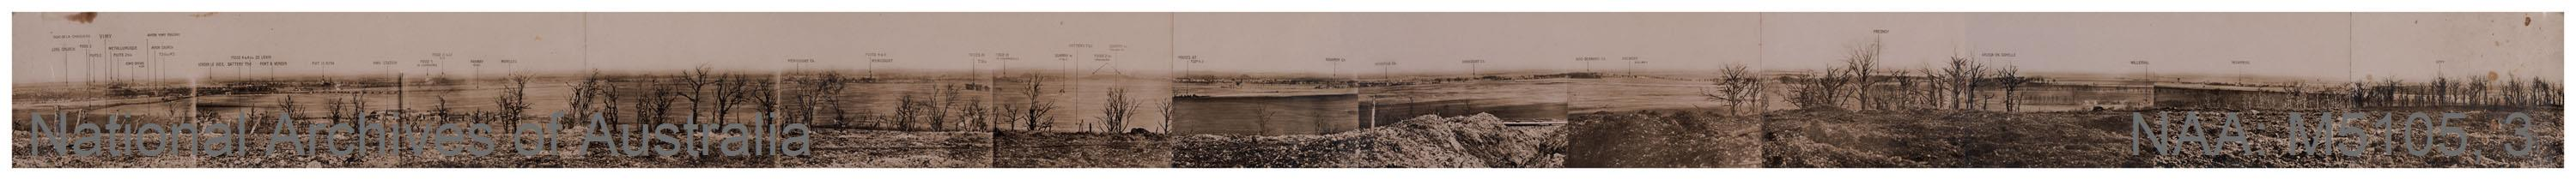 Records of Major Richard Victor Morse DSO (Distinguished Service Order) - Photograph of dam and surrounding area, 11 December 1923 [WW1 panorama view in 13 assembled images, covering from L to R the country from Lens to Oppy ]